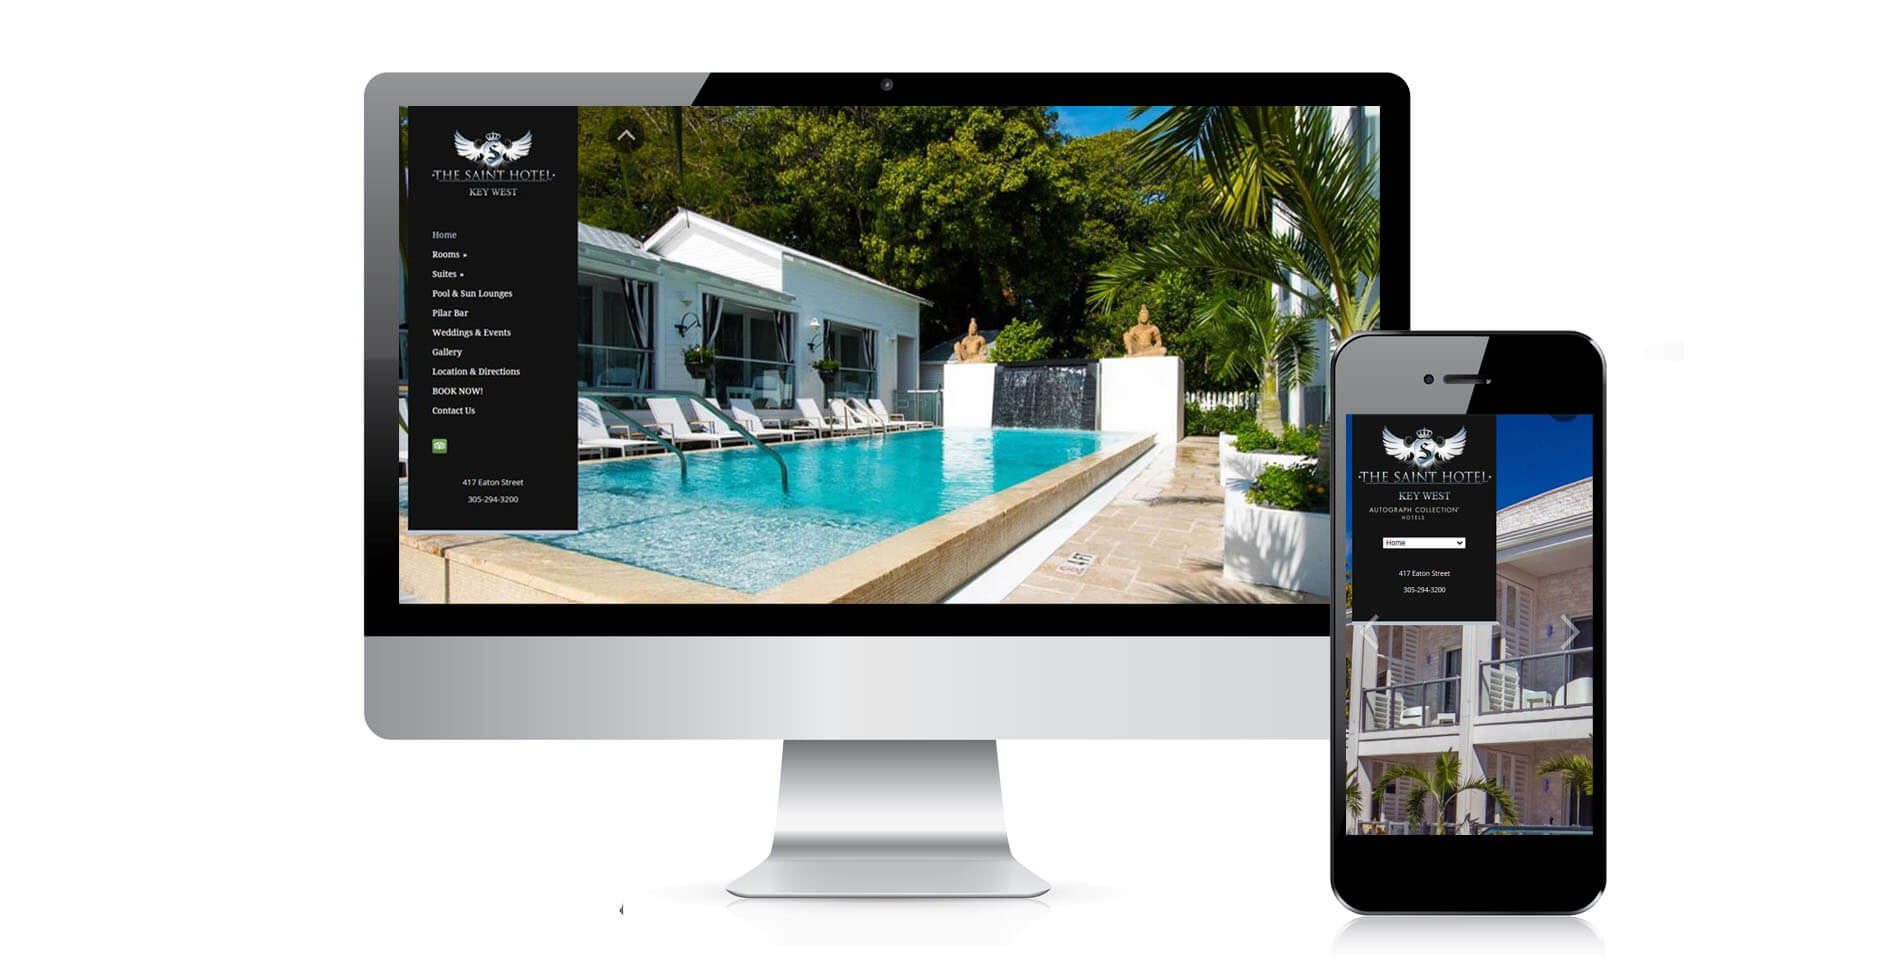 An image of the responsive design of Saint Hotel Key West, website created by Not Fade Away Marketing